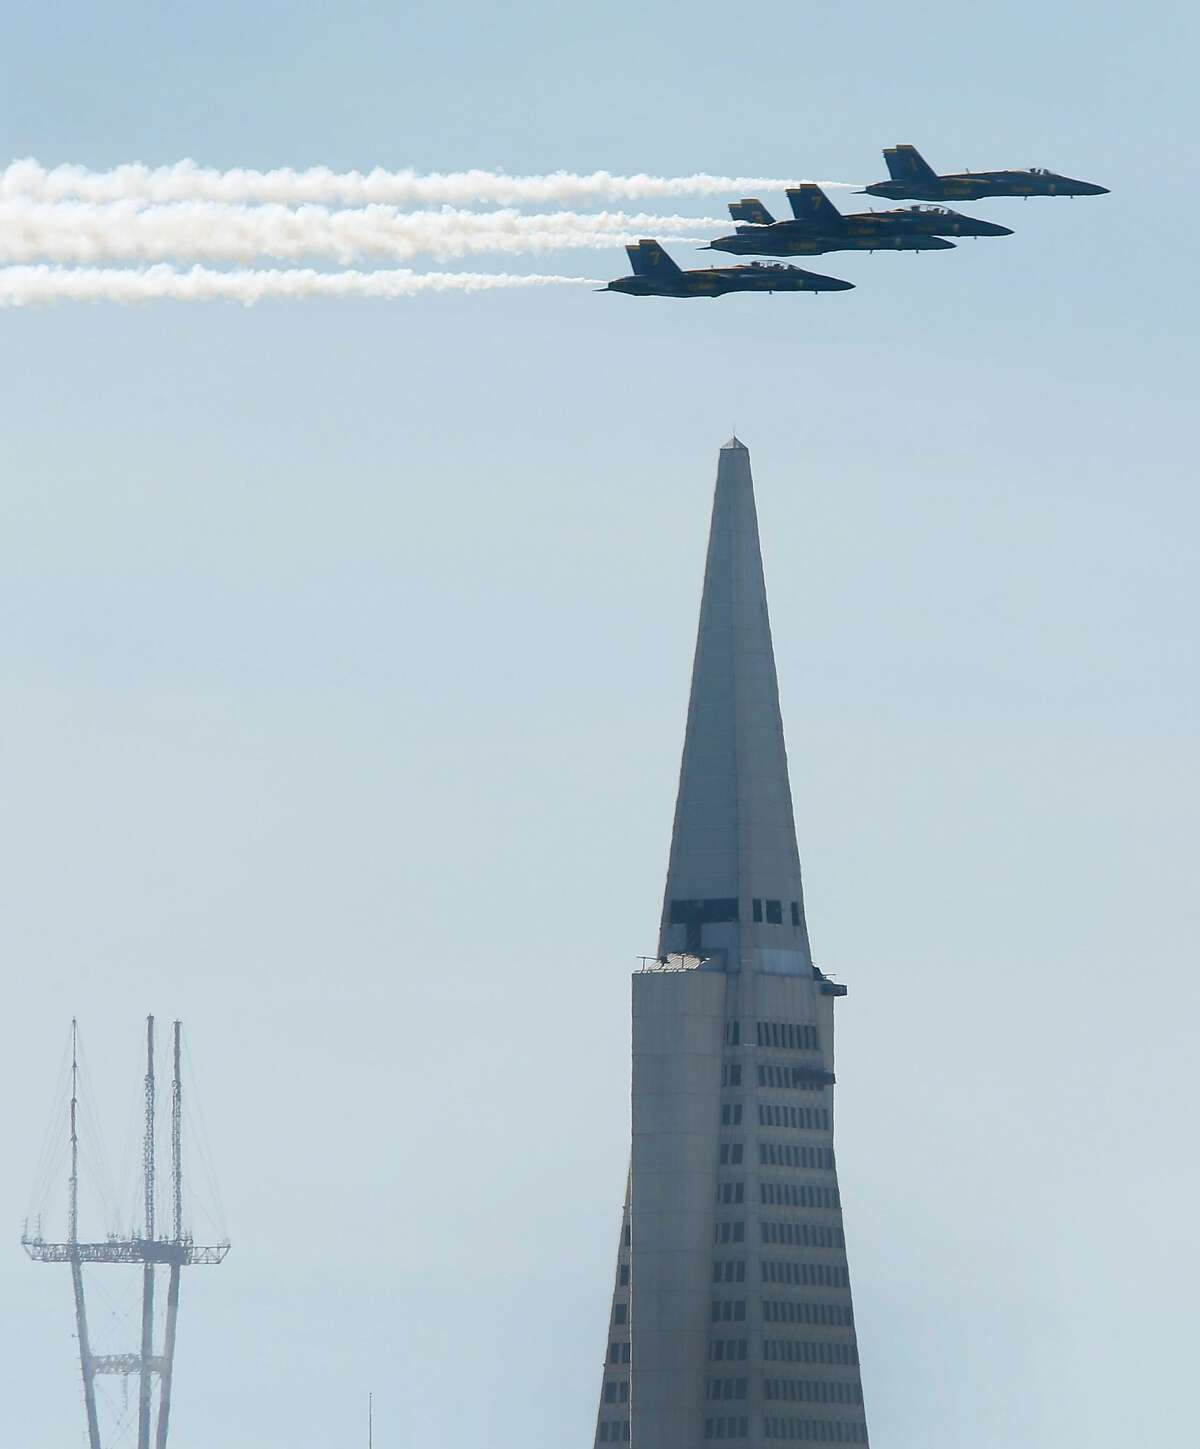 The Blue Angels fly past Sutro Tower and the Transamerica Pyramid on a practice flight for this weekend's Fleet Week air shows in San Francisco, Calif. on Thursday, Oct. 6, 2016.